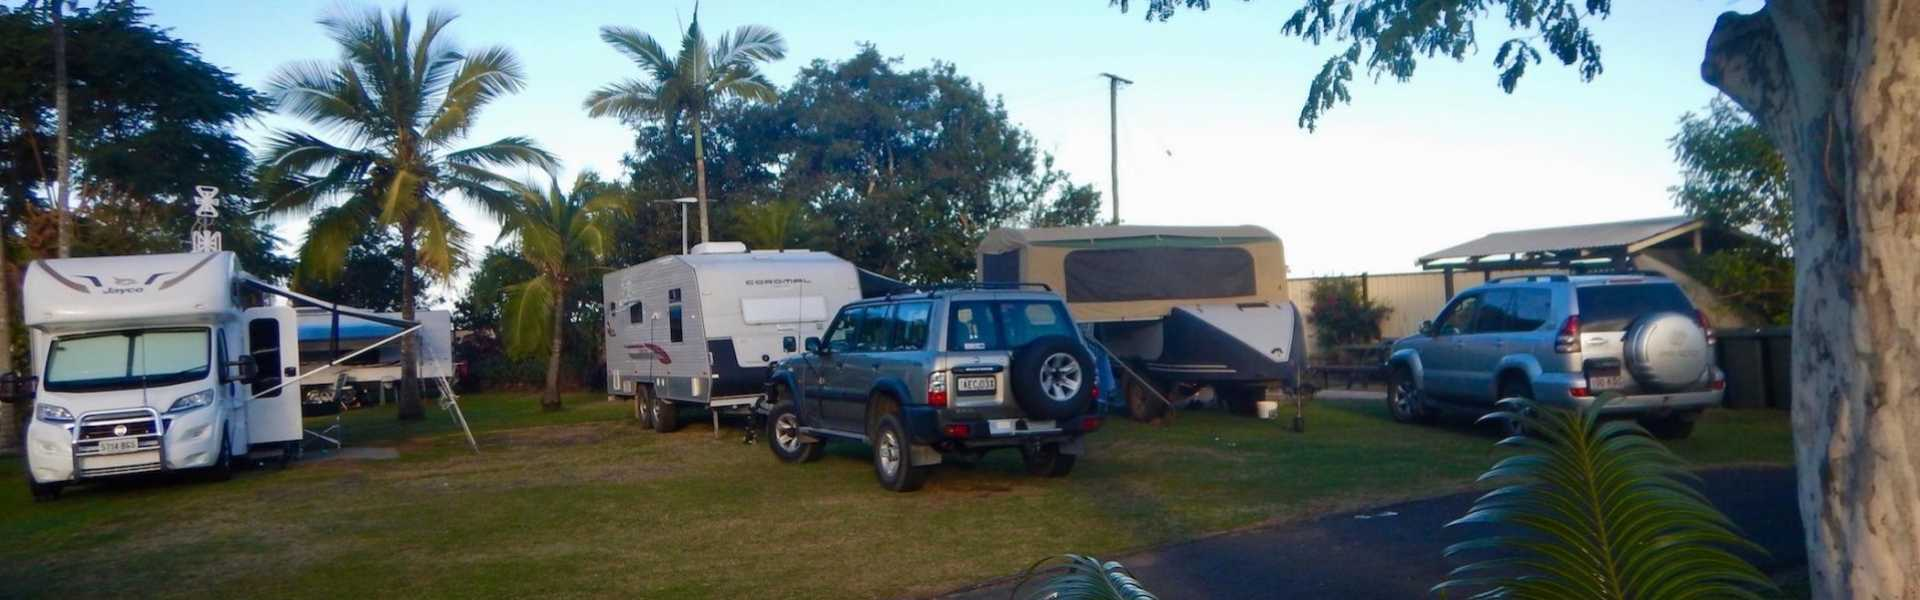 Kui Parks, Bundaberg, Oakwood Caravan Park, Sites